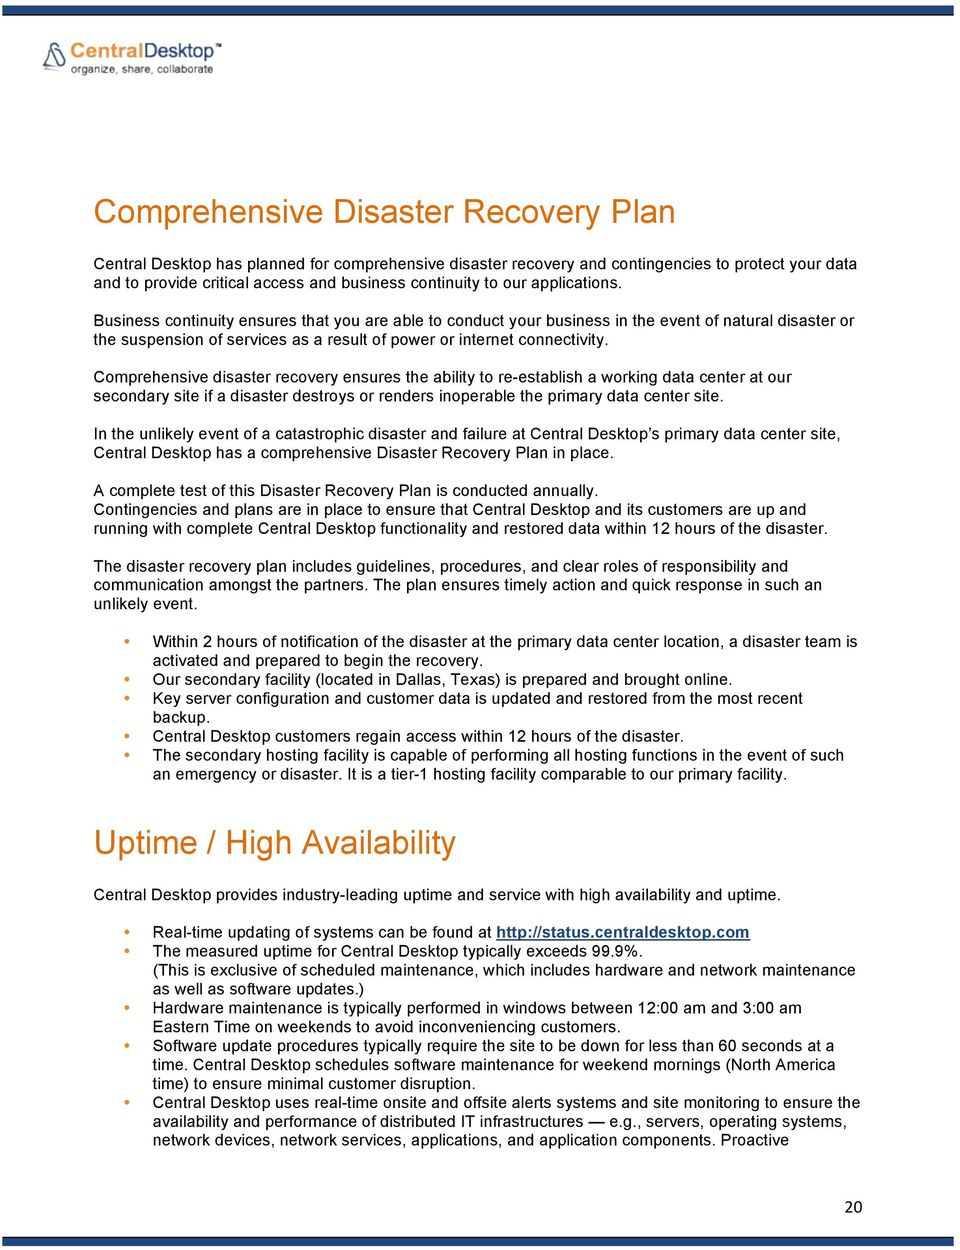 Comprehensive disaster recovery ensures the ability to re-establish a working data center at our secondary site if a disaster destroys or renders inoperable the primary data center site.